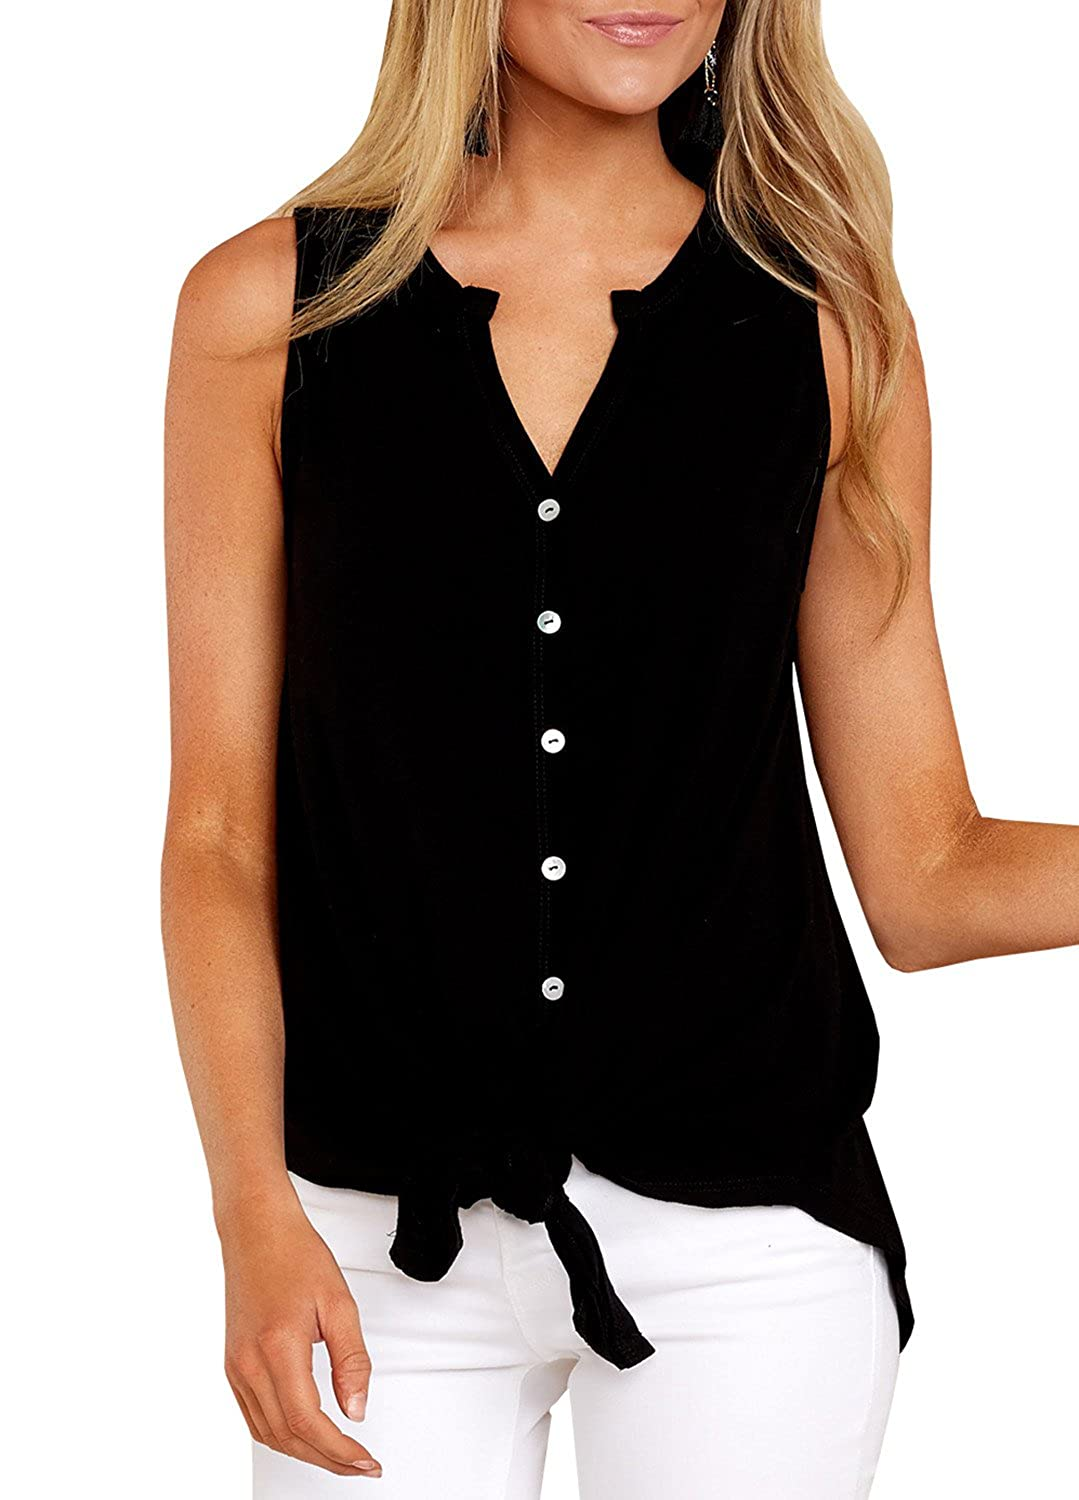 20f1db7d6a1 Ivay Women s Sleeveless Tie Front Henley Shirts Button up Tank Top at  Amazon Women s Clothing store